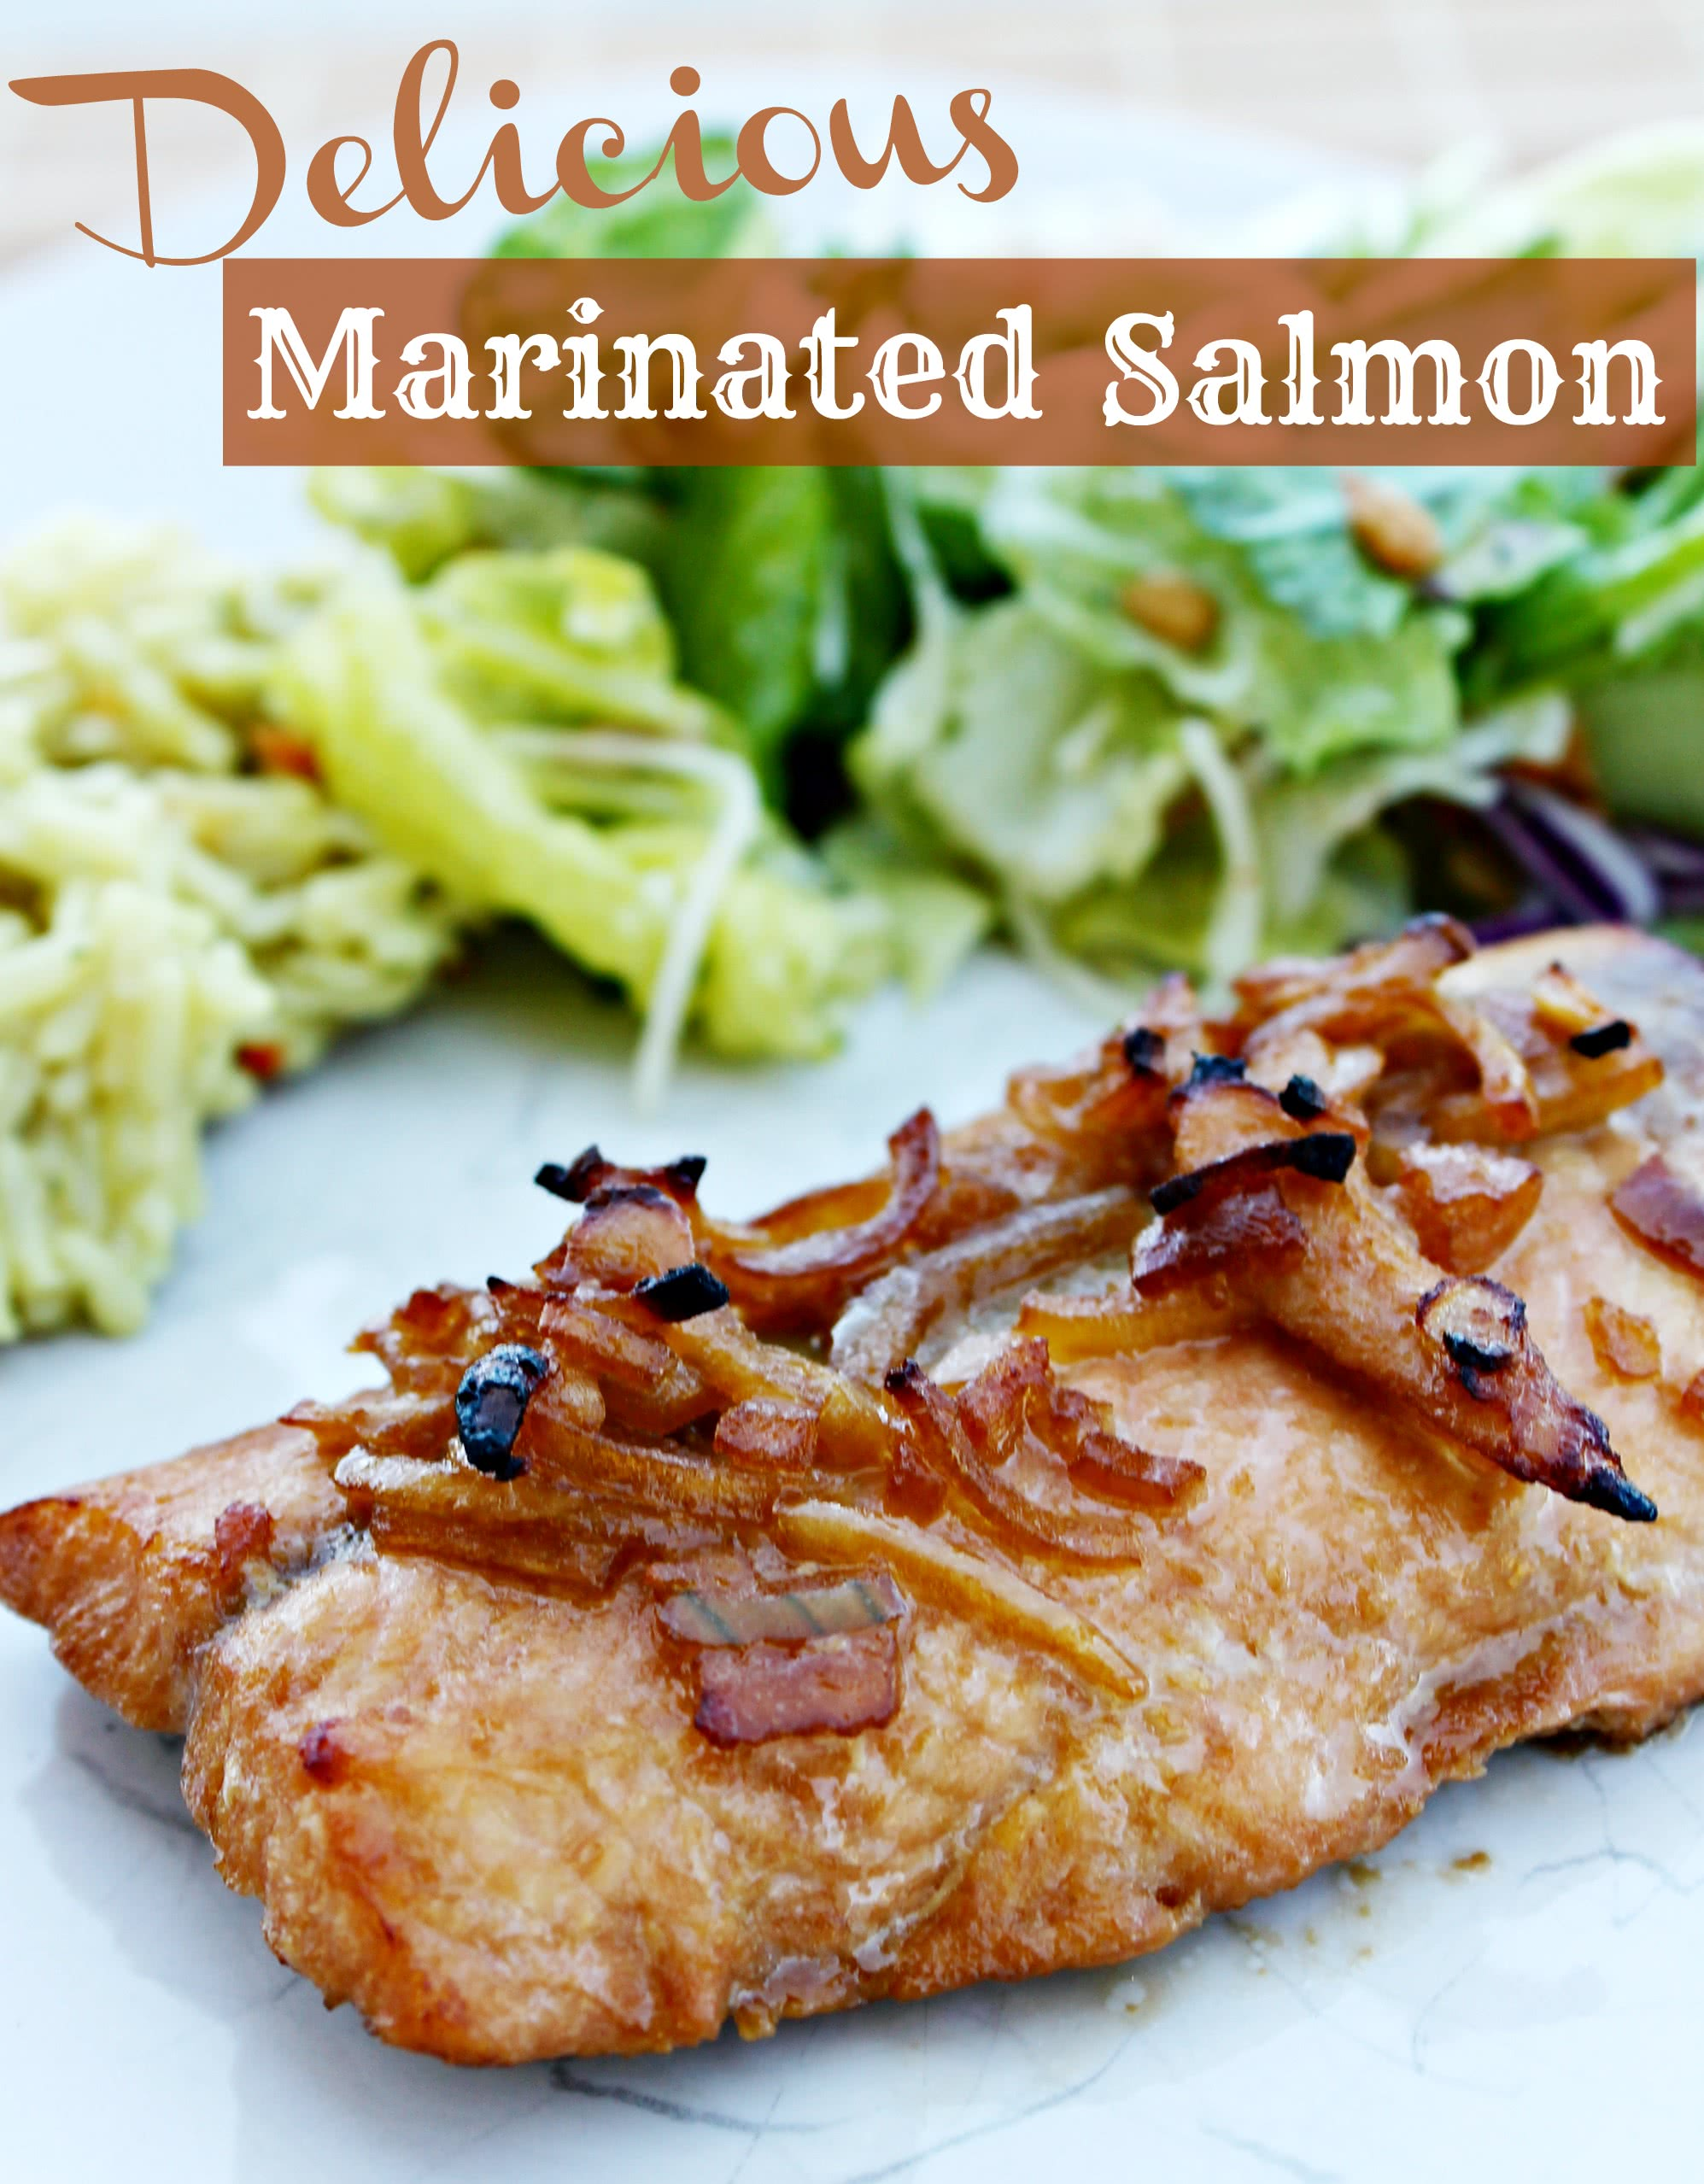 Delicious Marinated Salmon